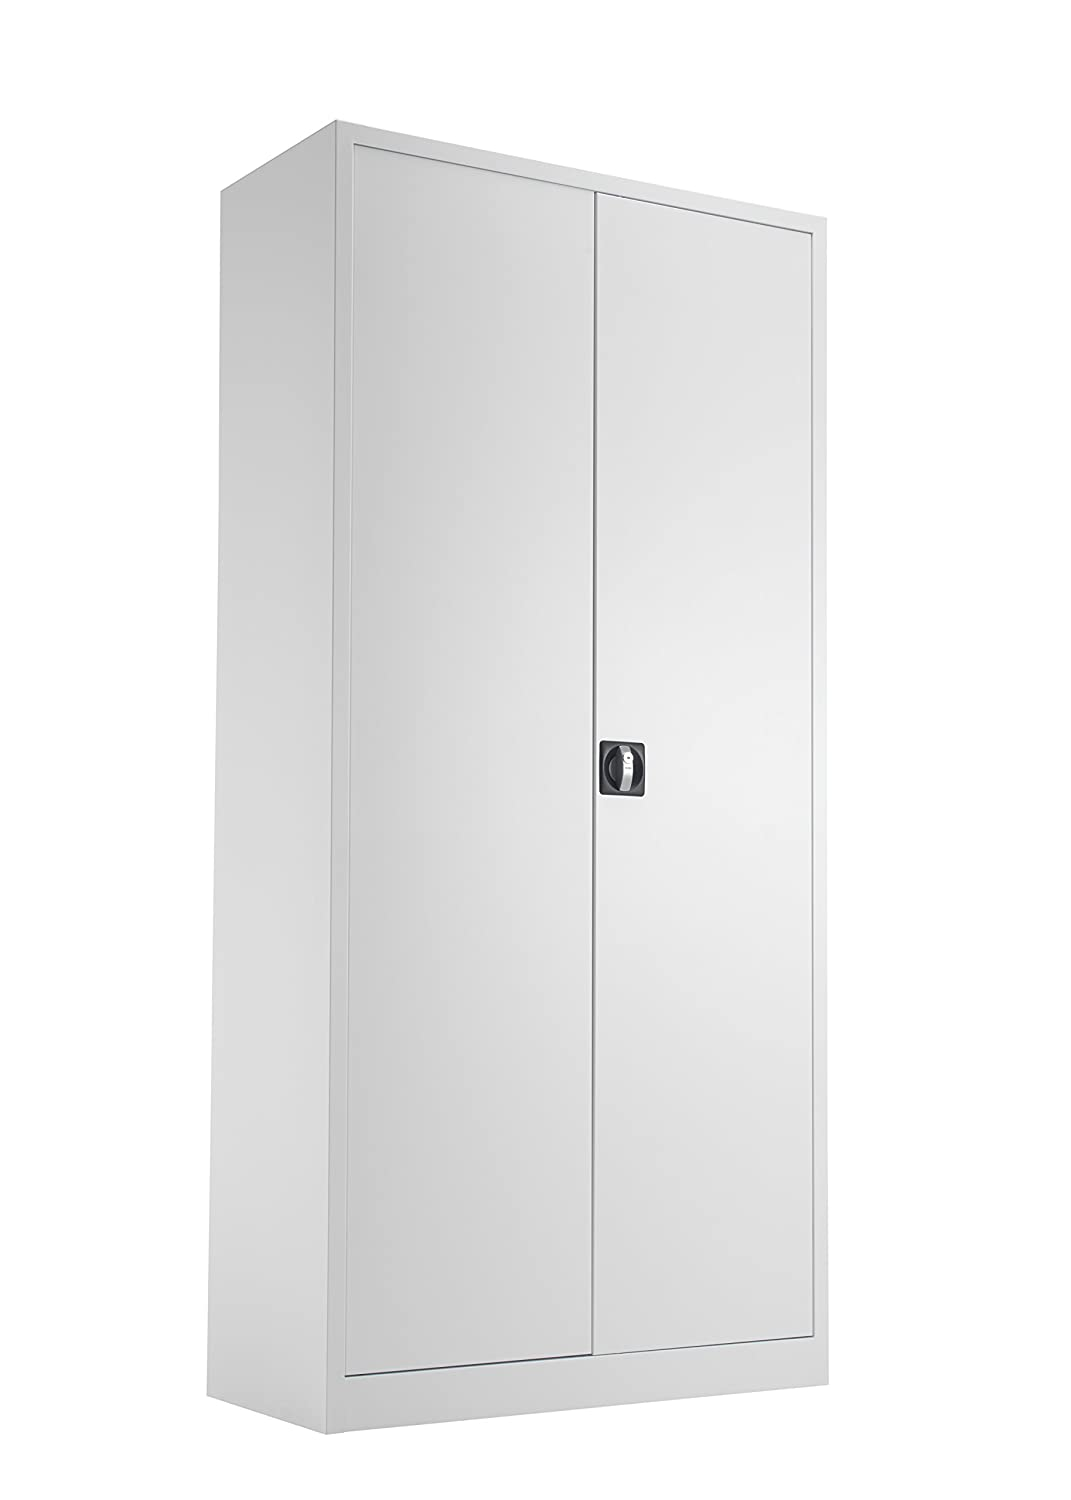 Office Hippo Steel Double Door Cupboard with 2 Shelves, Fully Lockable, 100 cm High, Metal, White TCSDDC1000WH